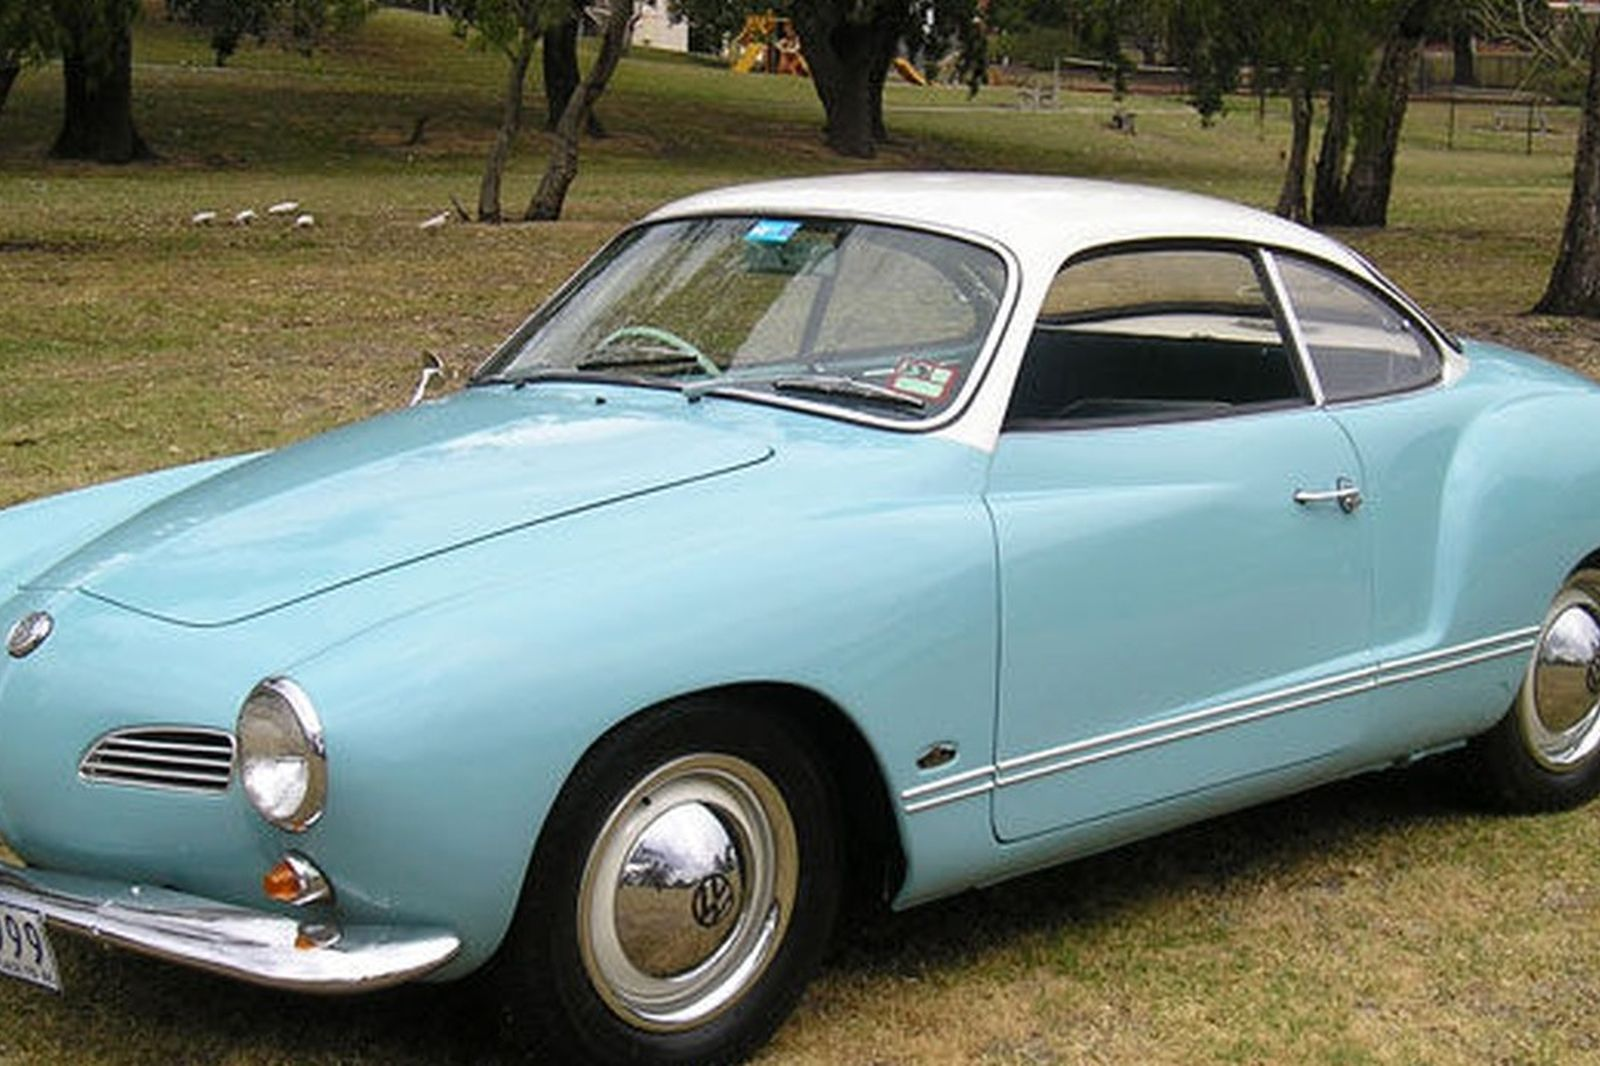 sold volkswagen karmann ghia coupe auctions lot 20 shannons. Black Bedroom Furniture Sets. Home Design Ideas